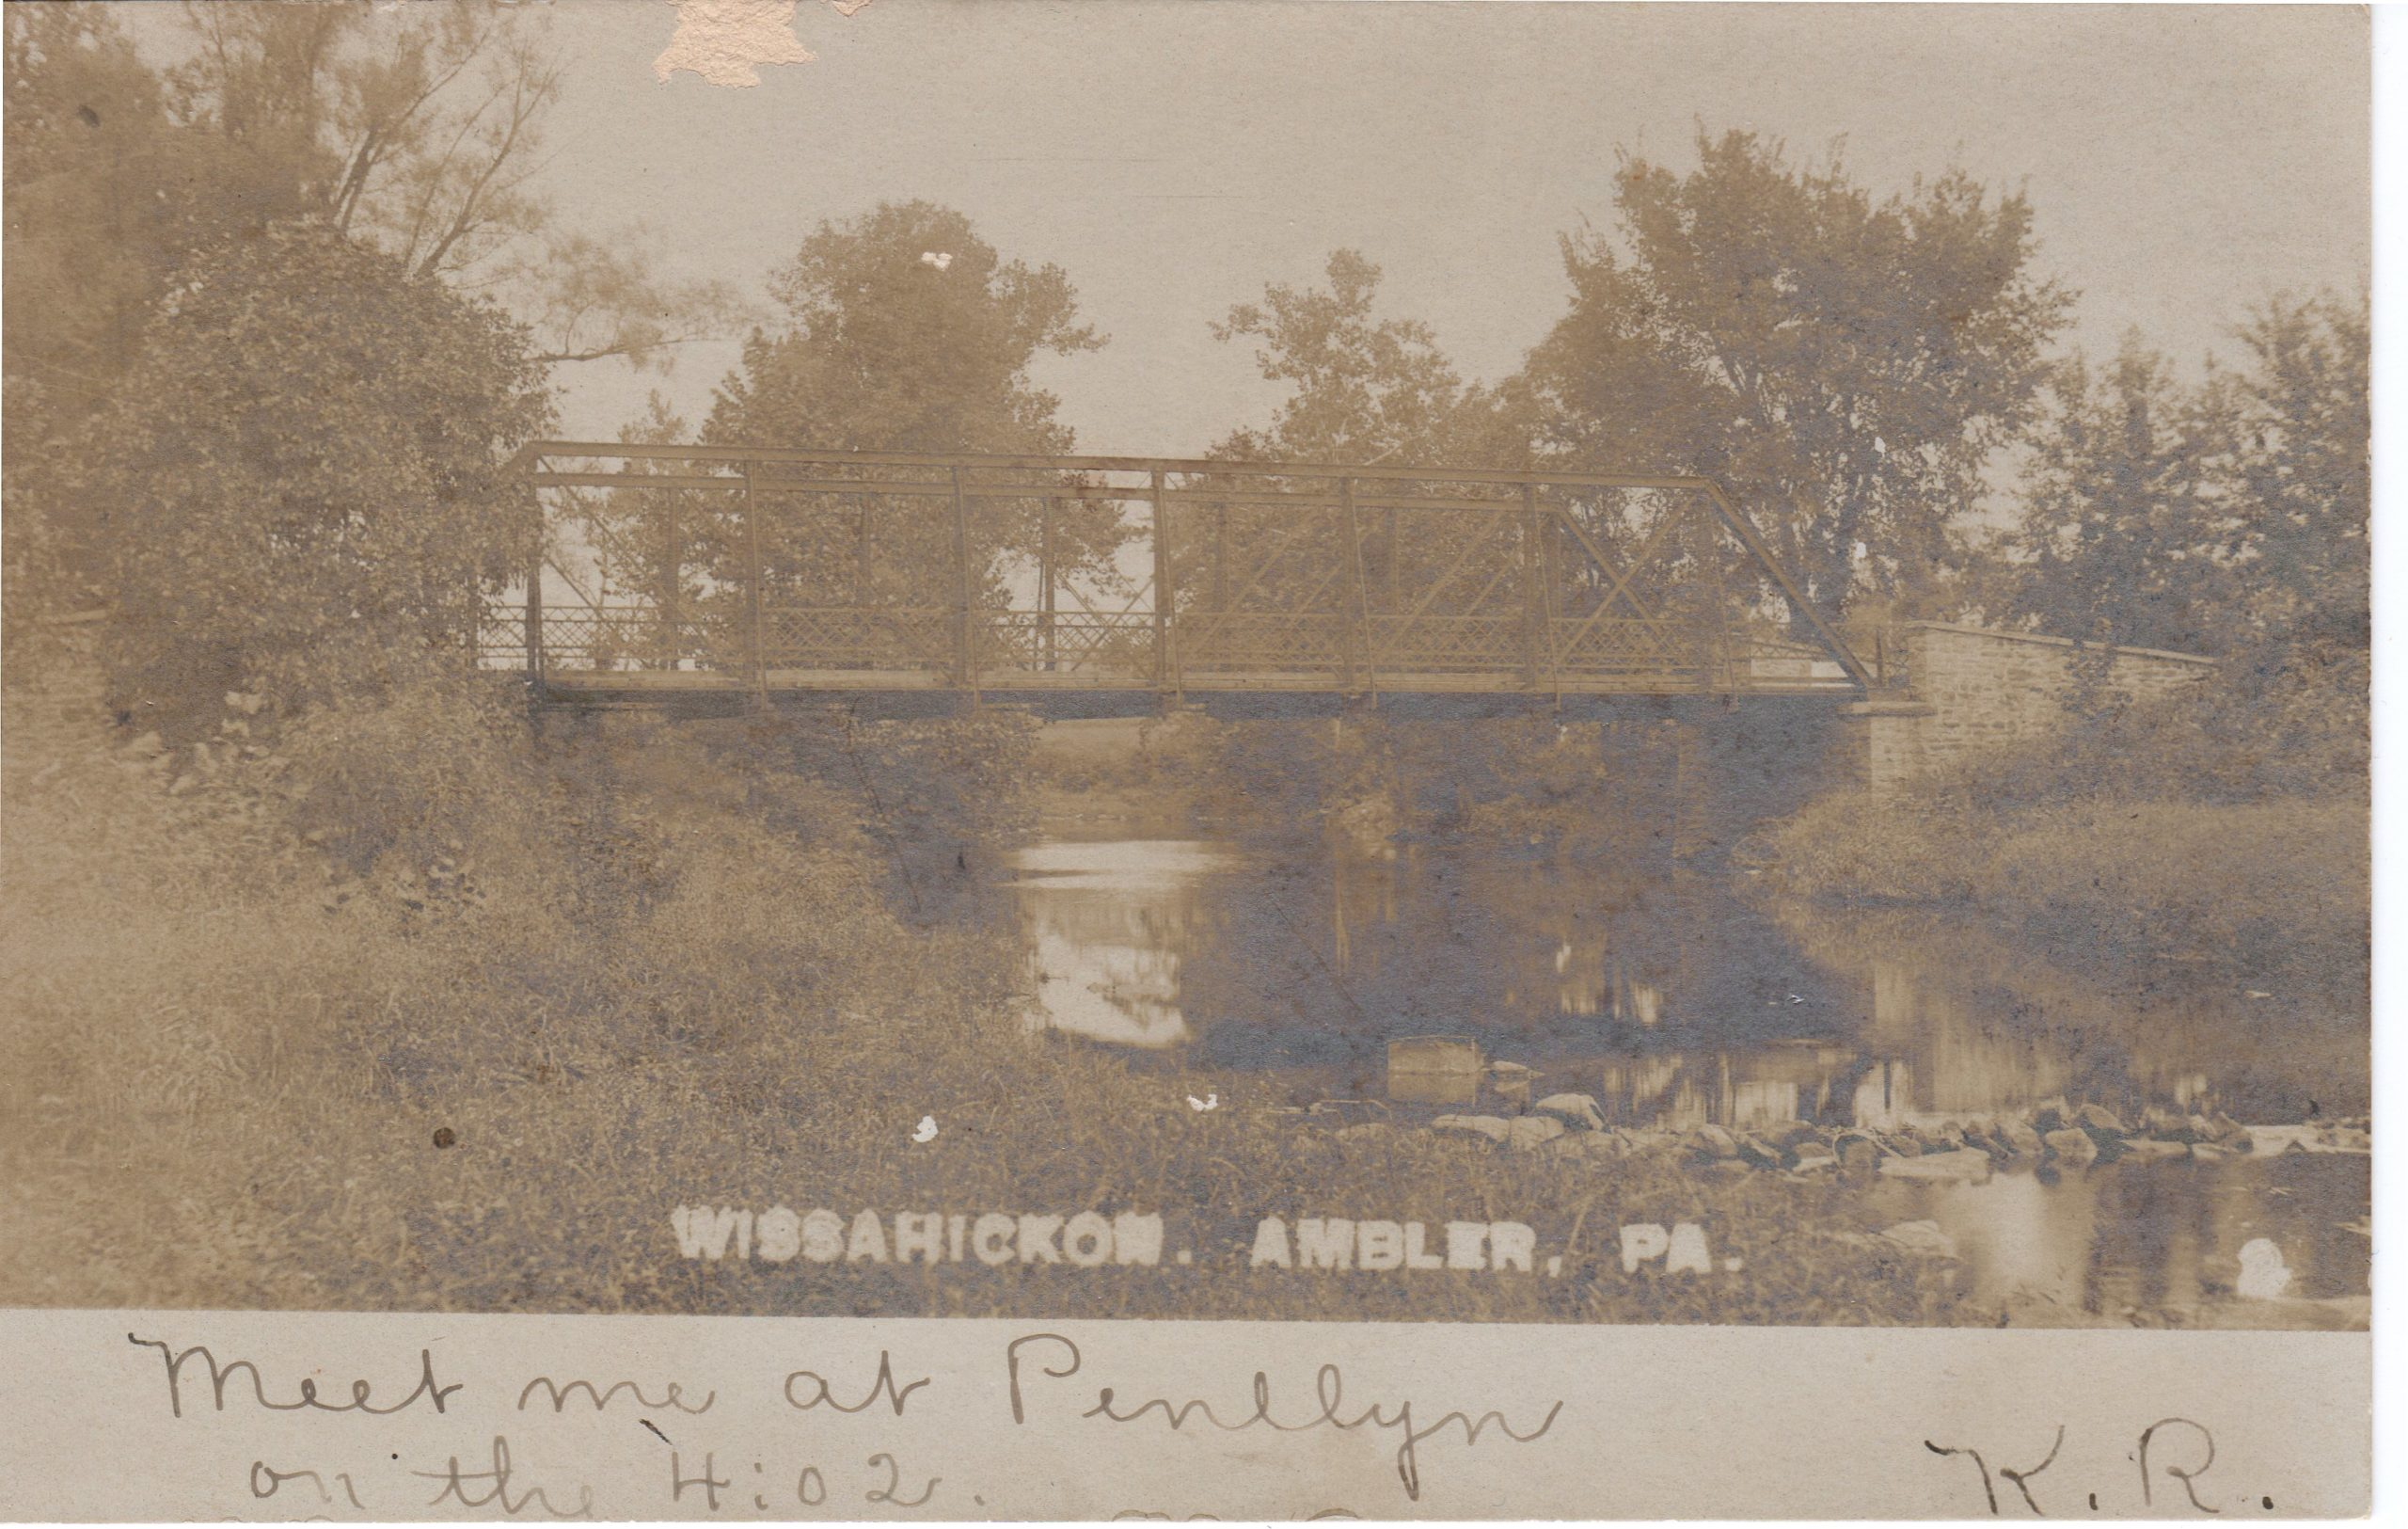 4125.39 Ambler Pa Postcard_Wissahickon Bridge North Ambler